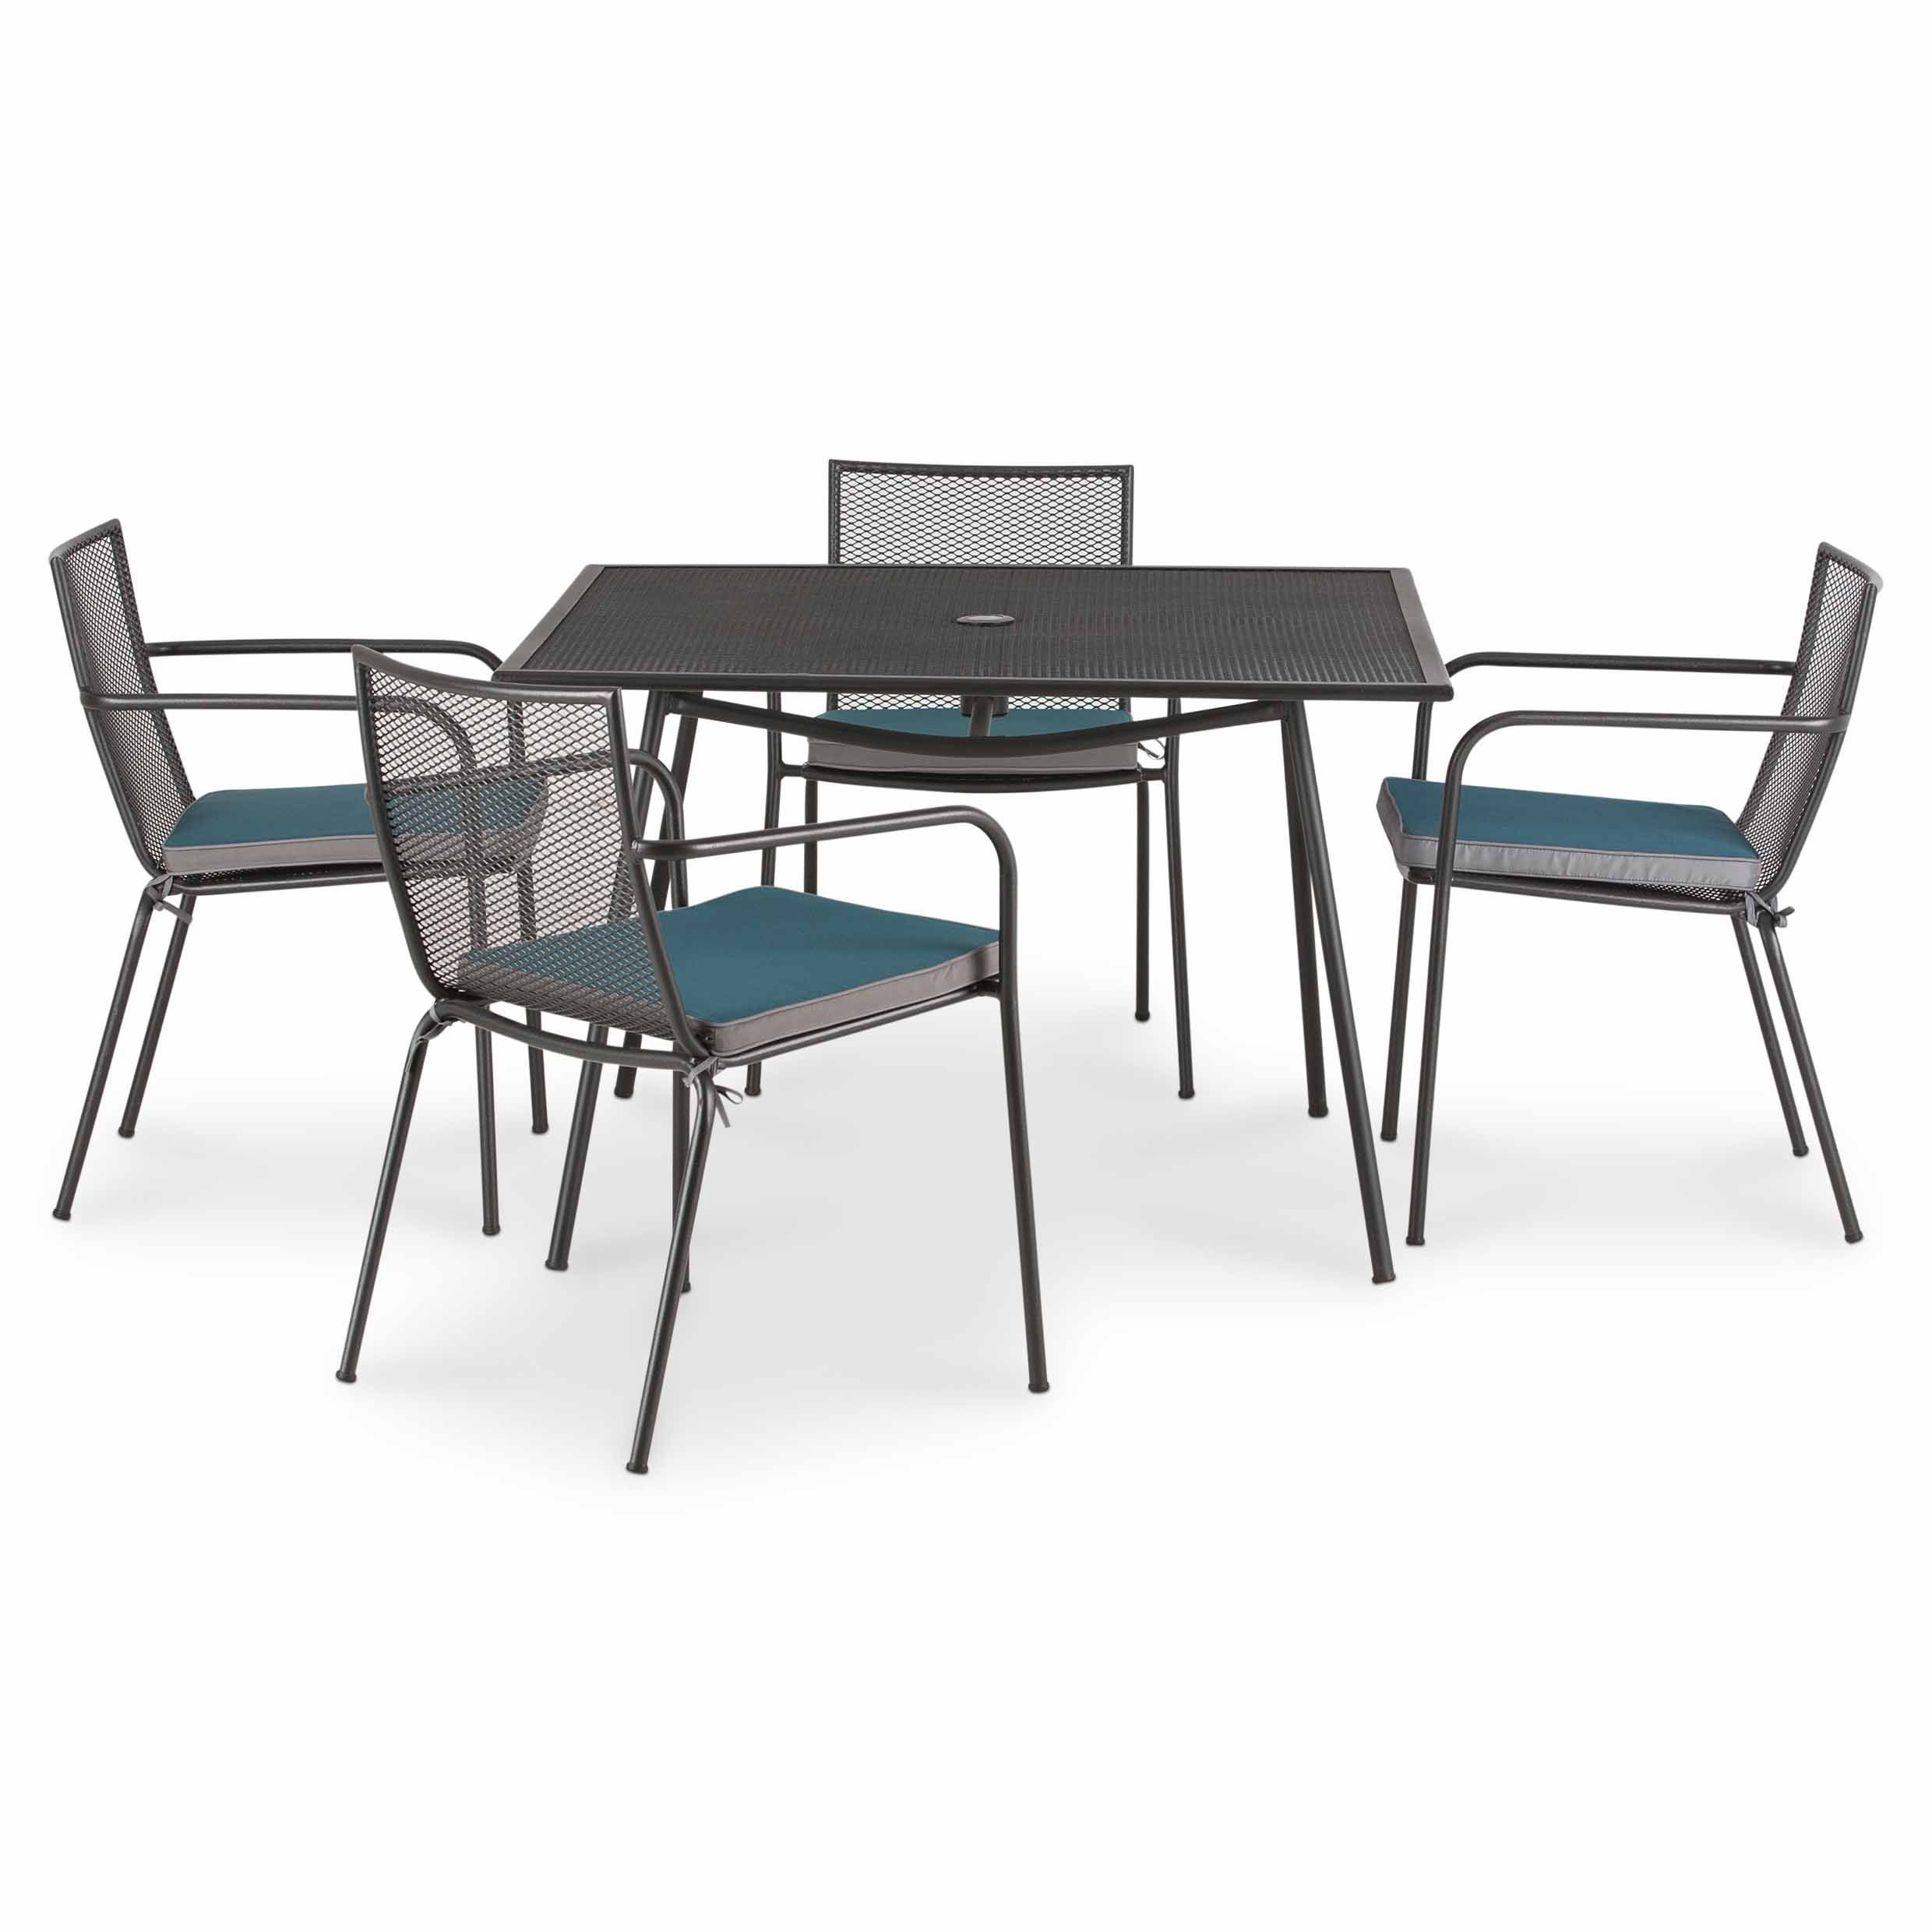 Adelaide Metal 4 Seater Dining Set SetsDining TableSale